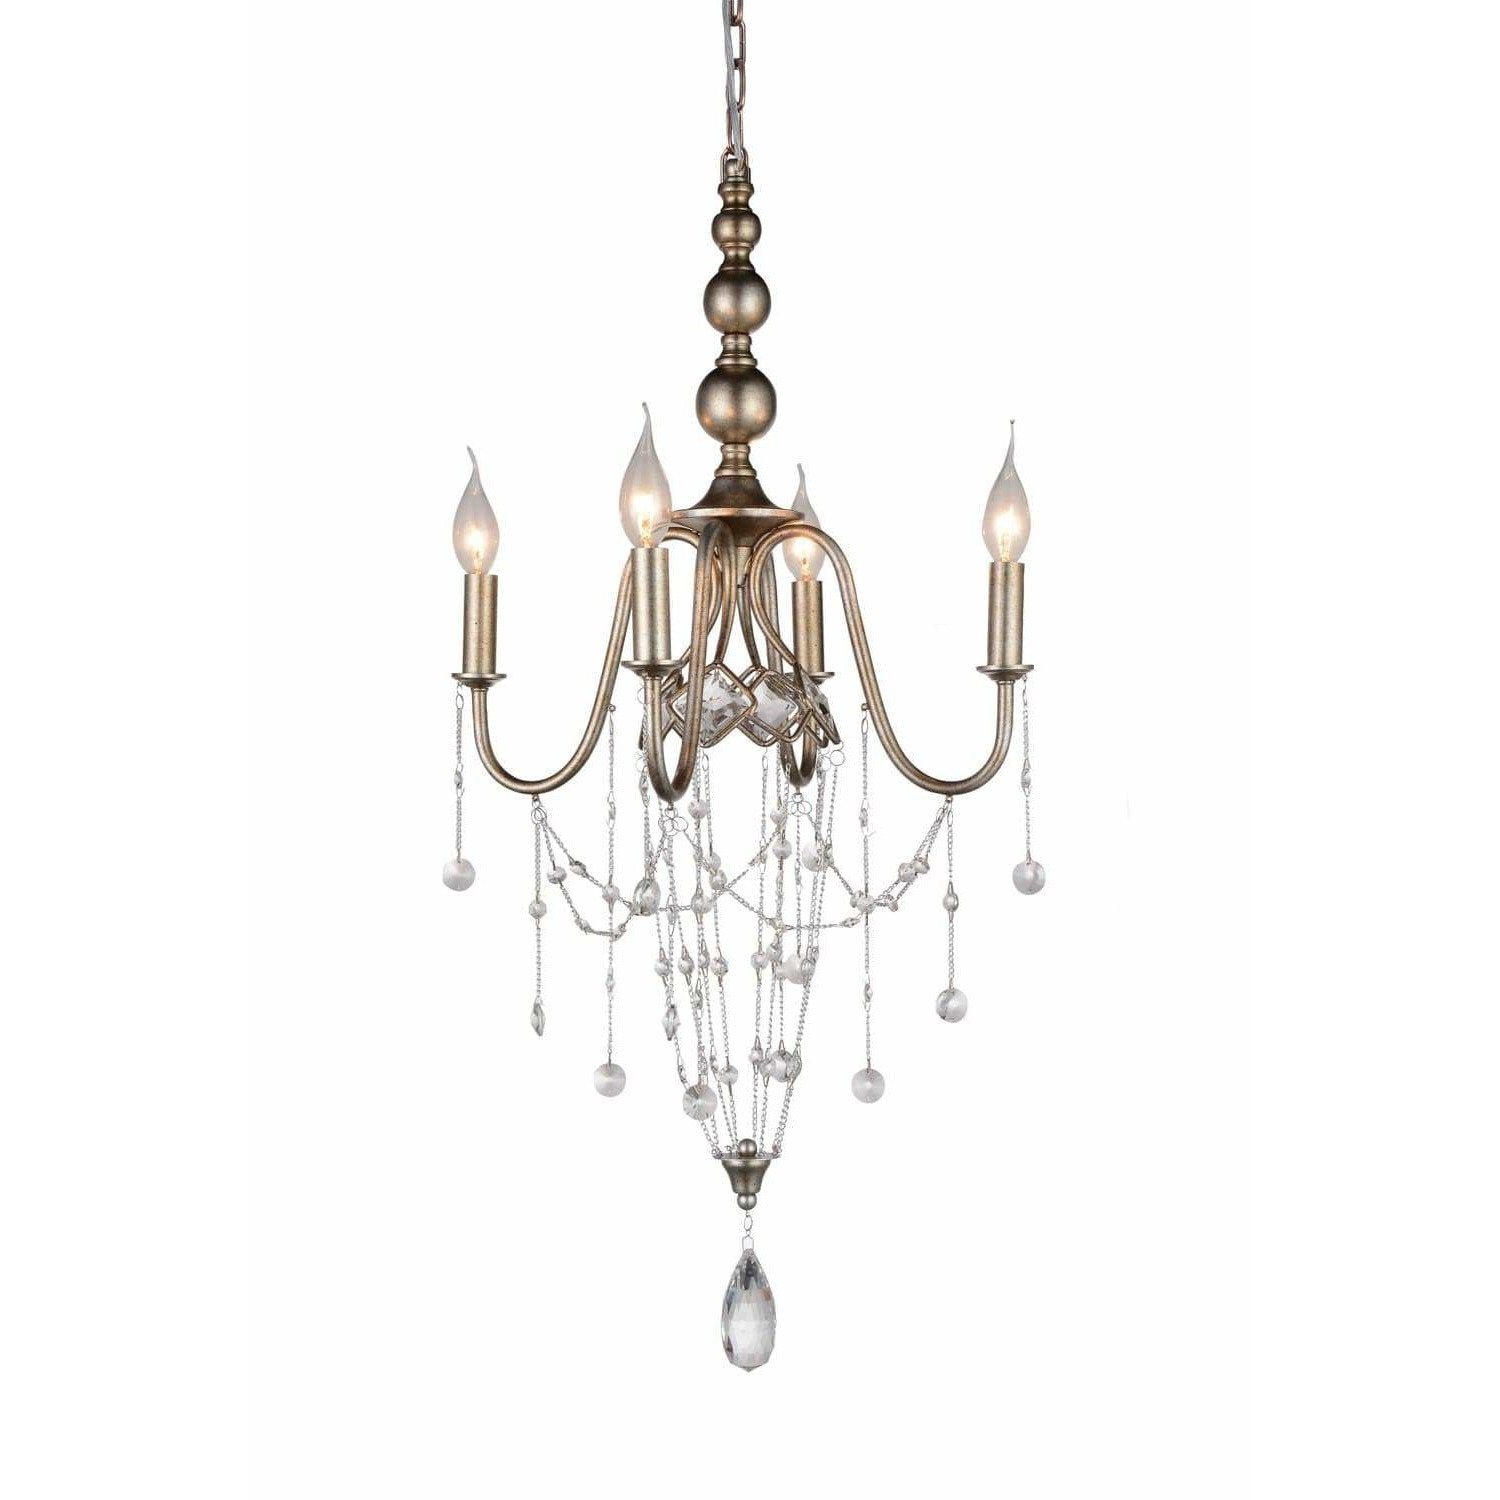 CWI Lighting Chandeliers Speckled Nickel / K9 Clear Pembina 4 Light Up Chandelier with Speckled Nickel finish by CWI Lighting 9840P17-4-161